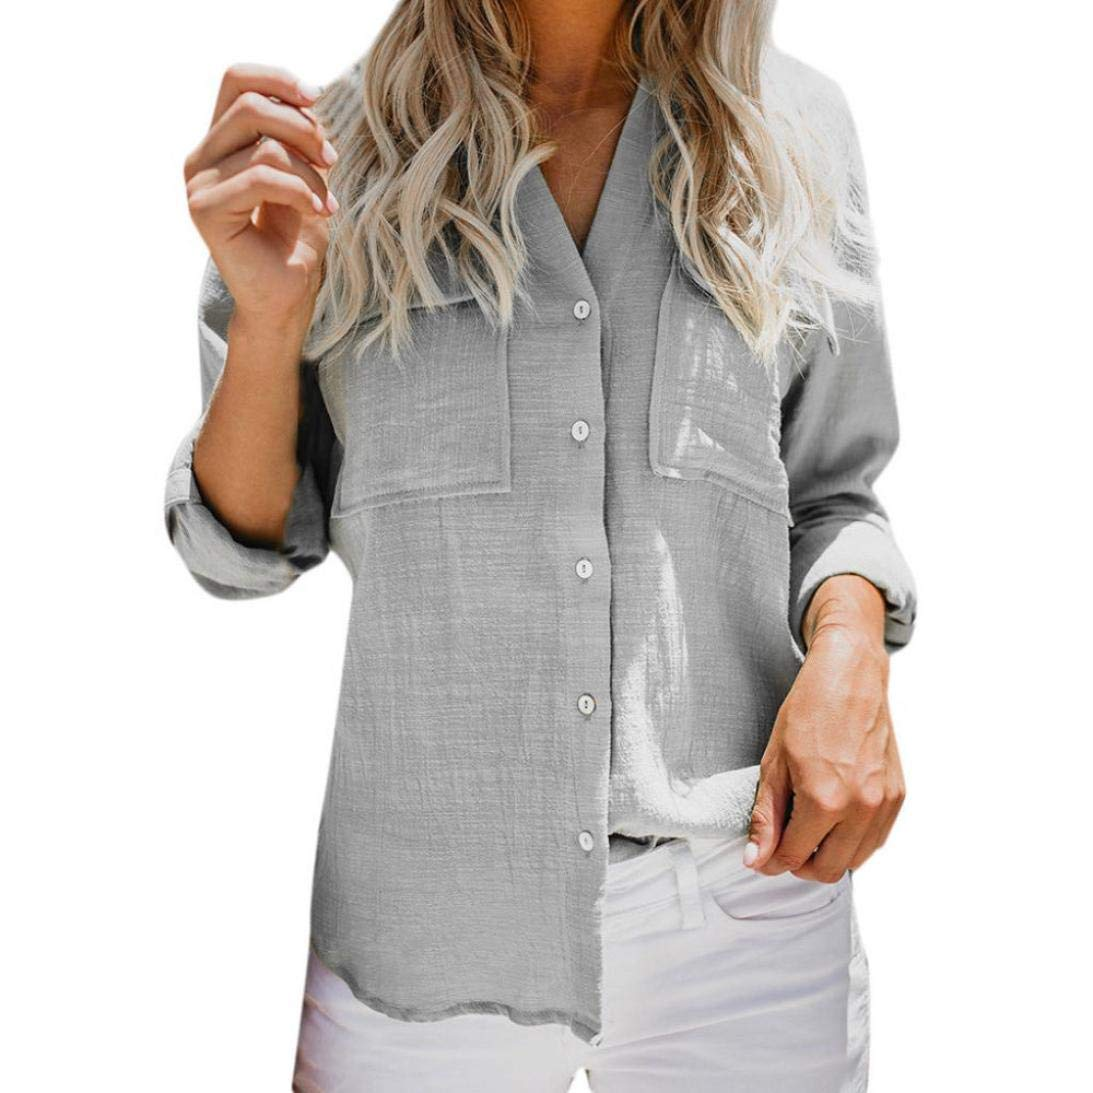 Women Cotton Linen Casual Solid Long Sleeve Shirt Blouse Button Down Tops SamMoSon 11814109